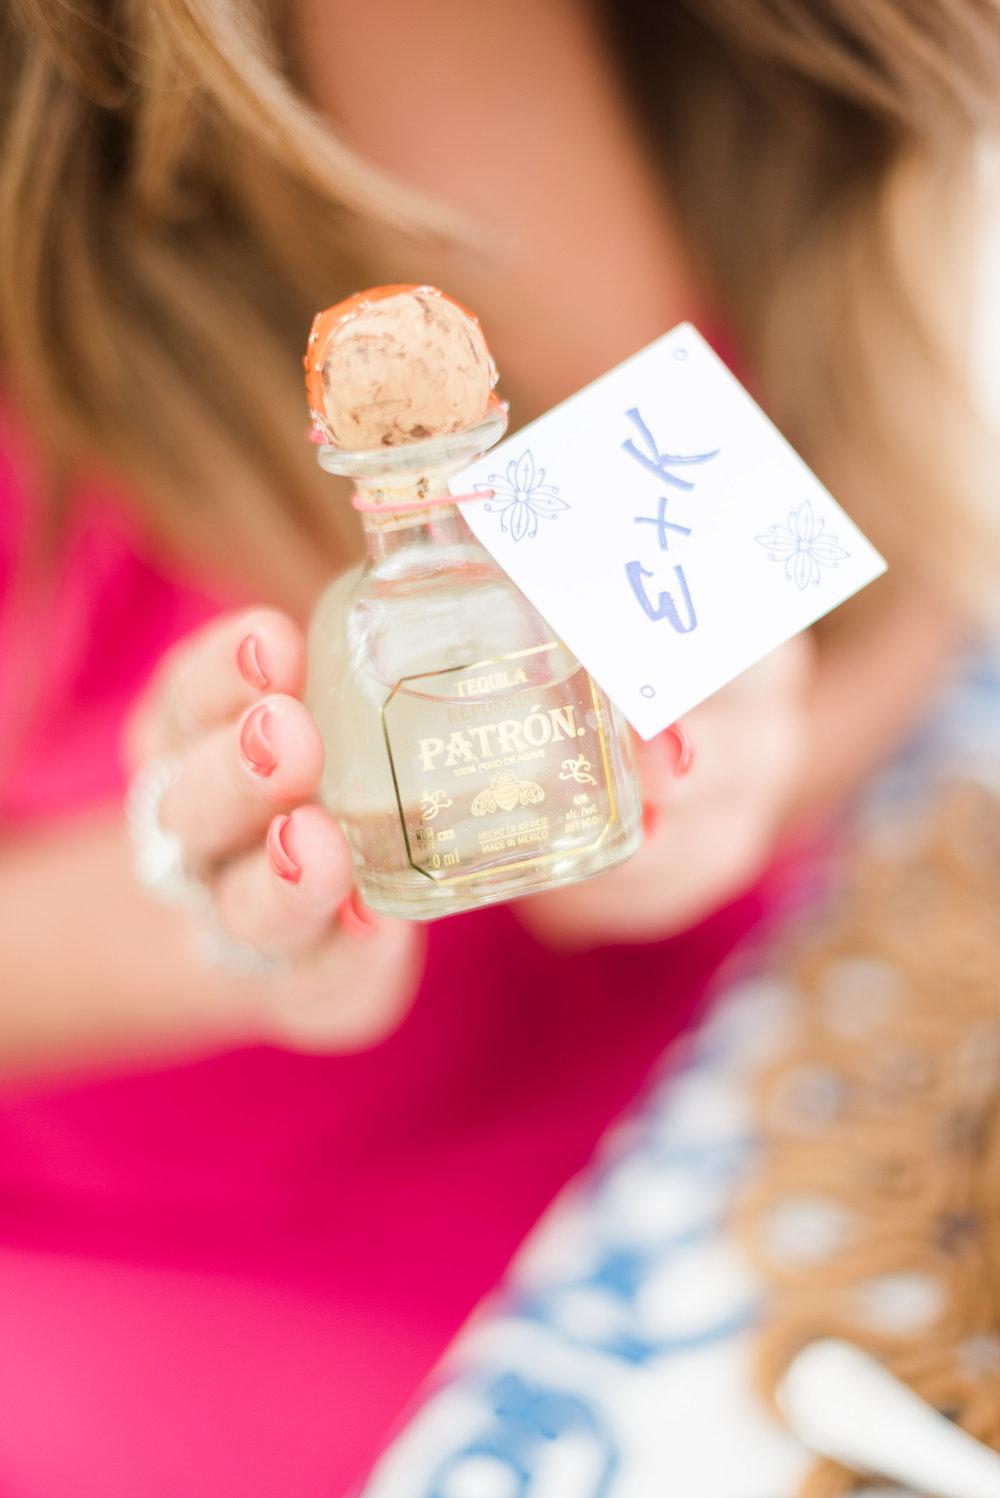 Fiesta-Party-Inspiration-by-Event-Prep-Cassandra-Clair-Photograpy-Amanda-Collins-72.jpg